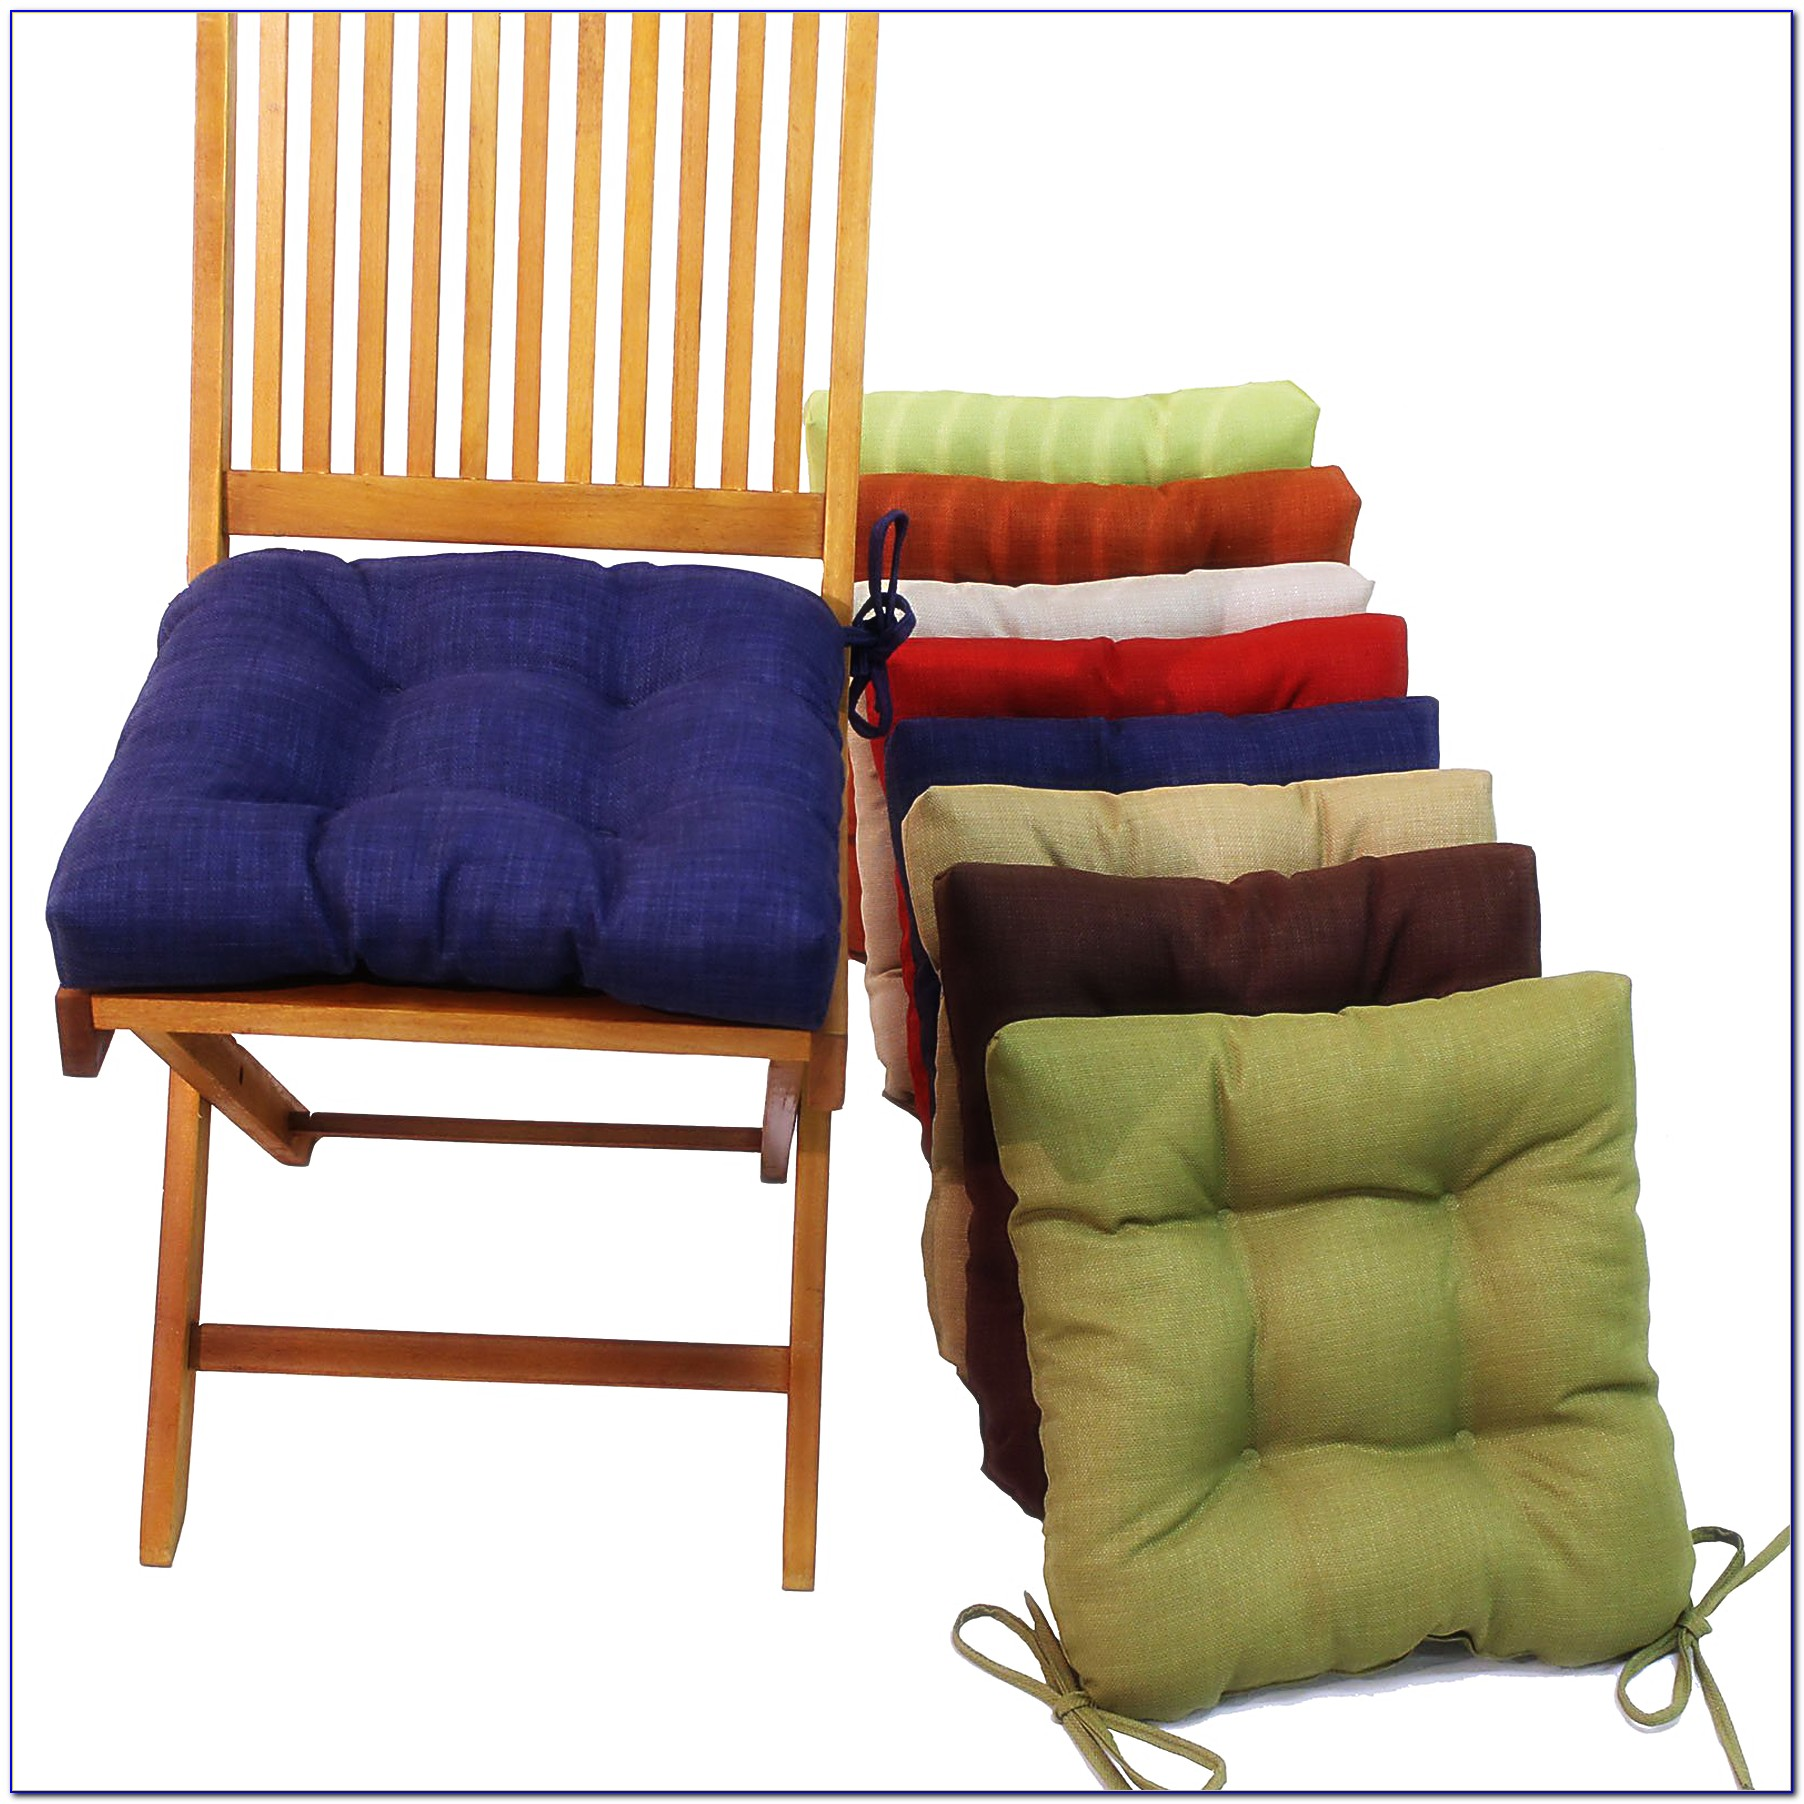 Ruffled Kitchen Chair Cushions With Ties